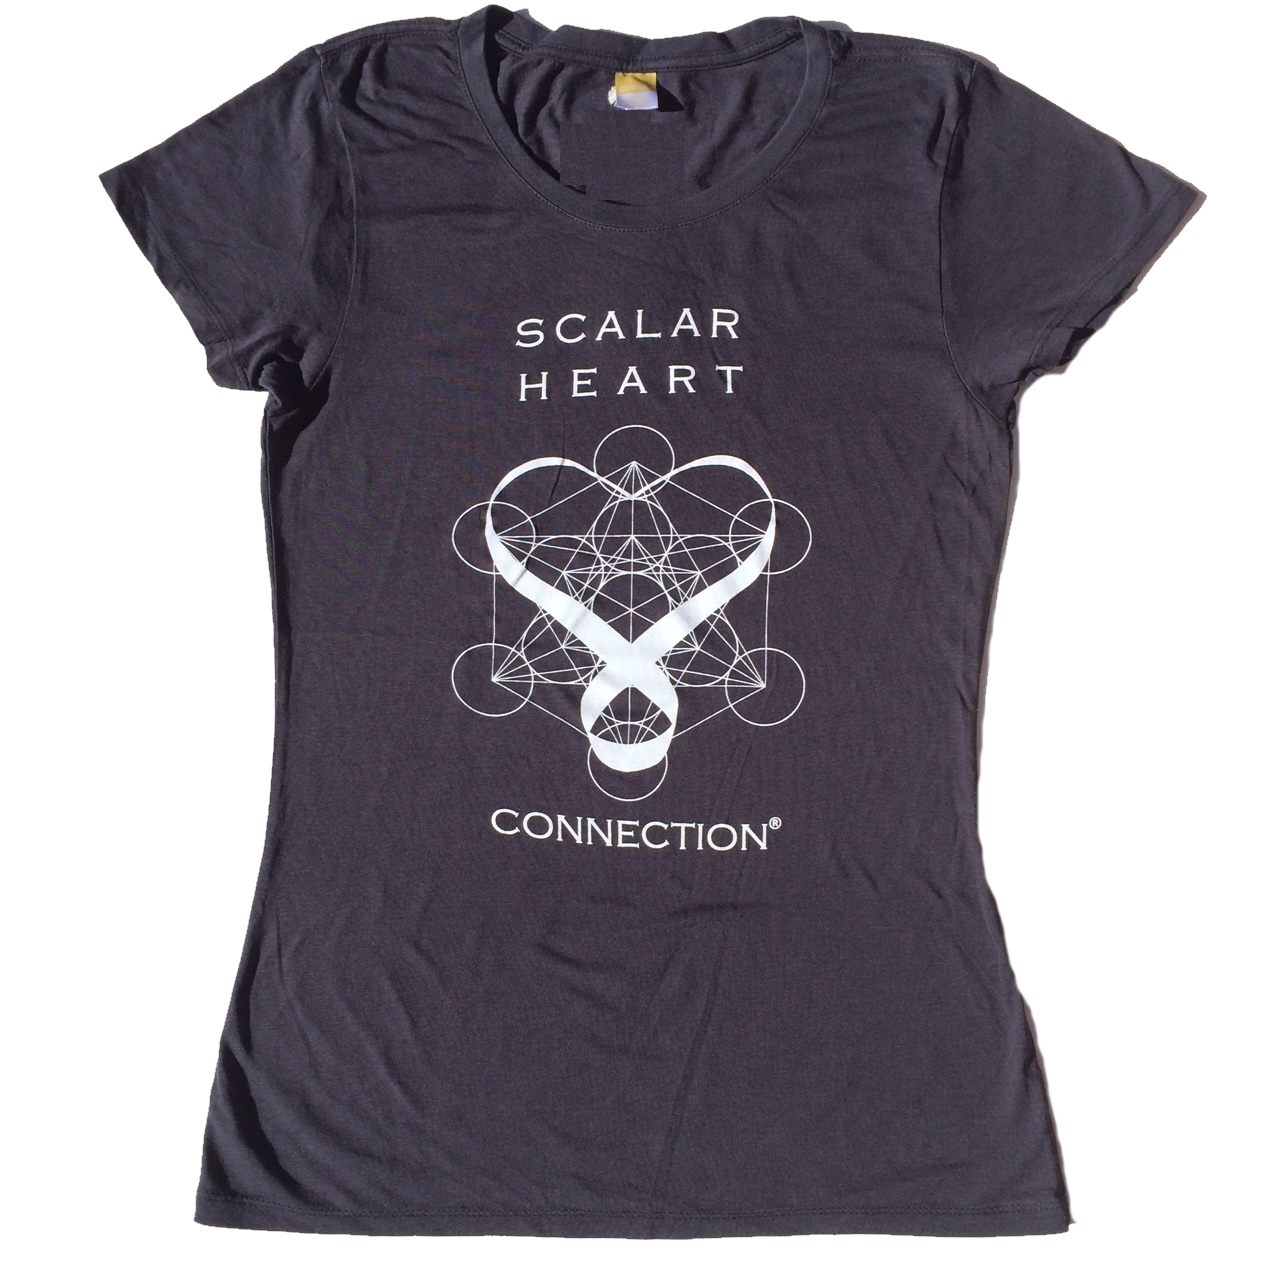 Women Organic Bamboo & Cotton T-shirt: Scalar Heart Connection in Metatron's Cube 00626